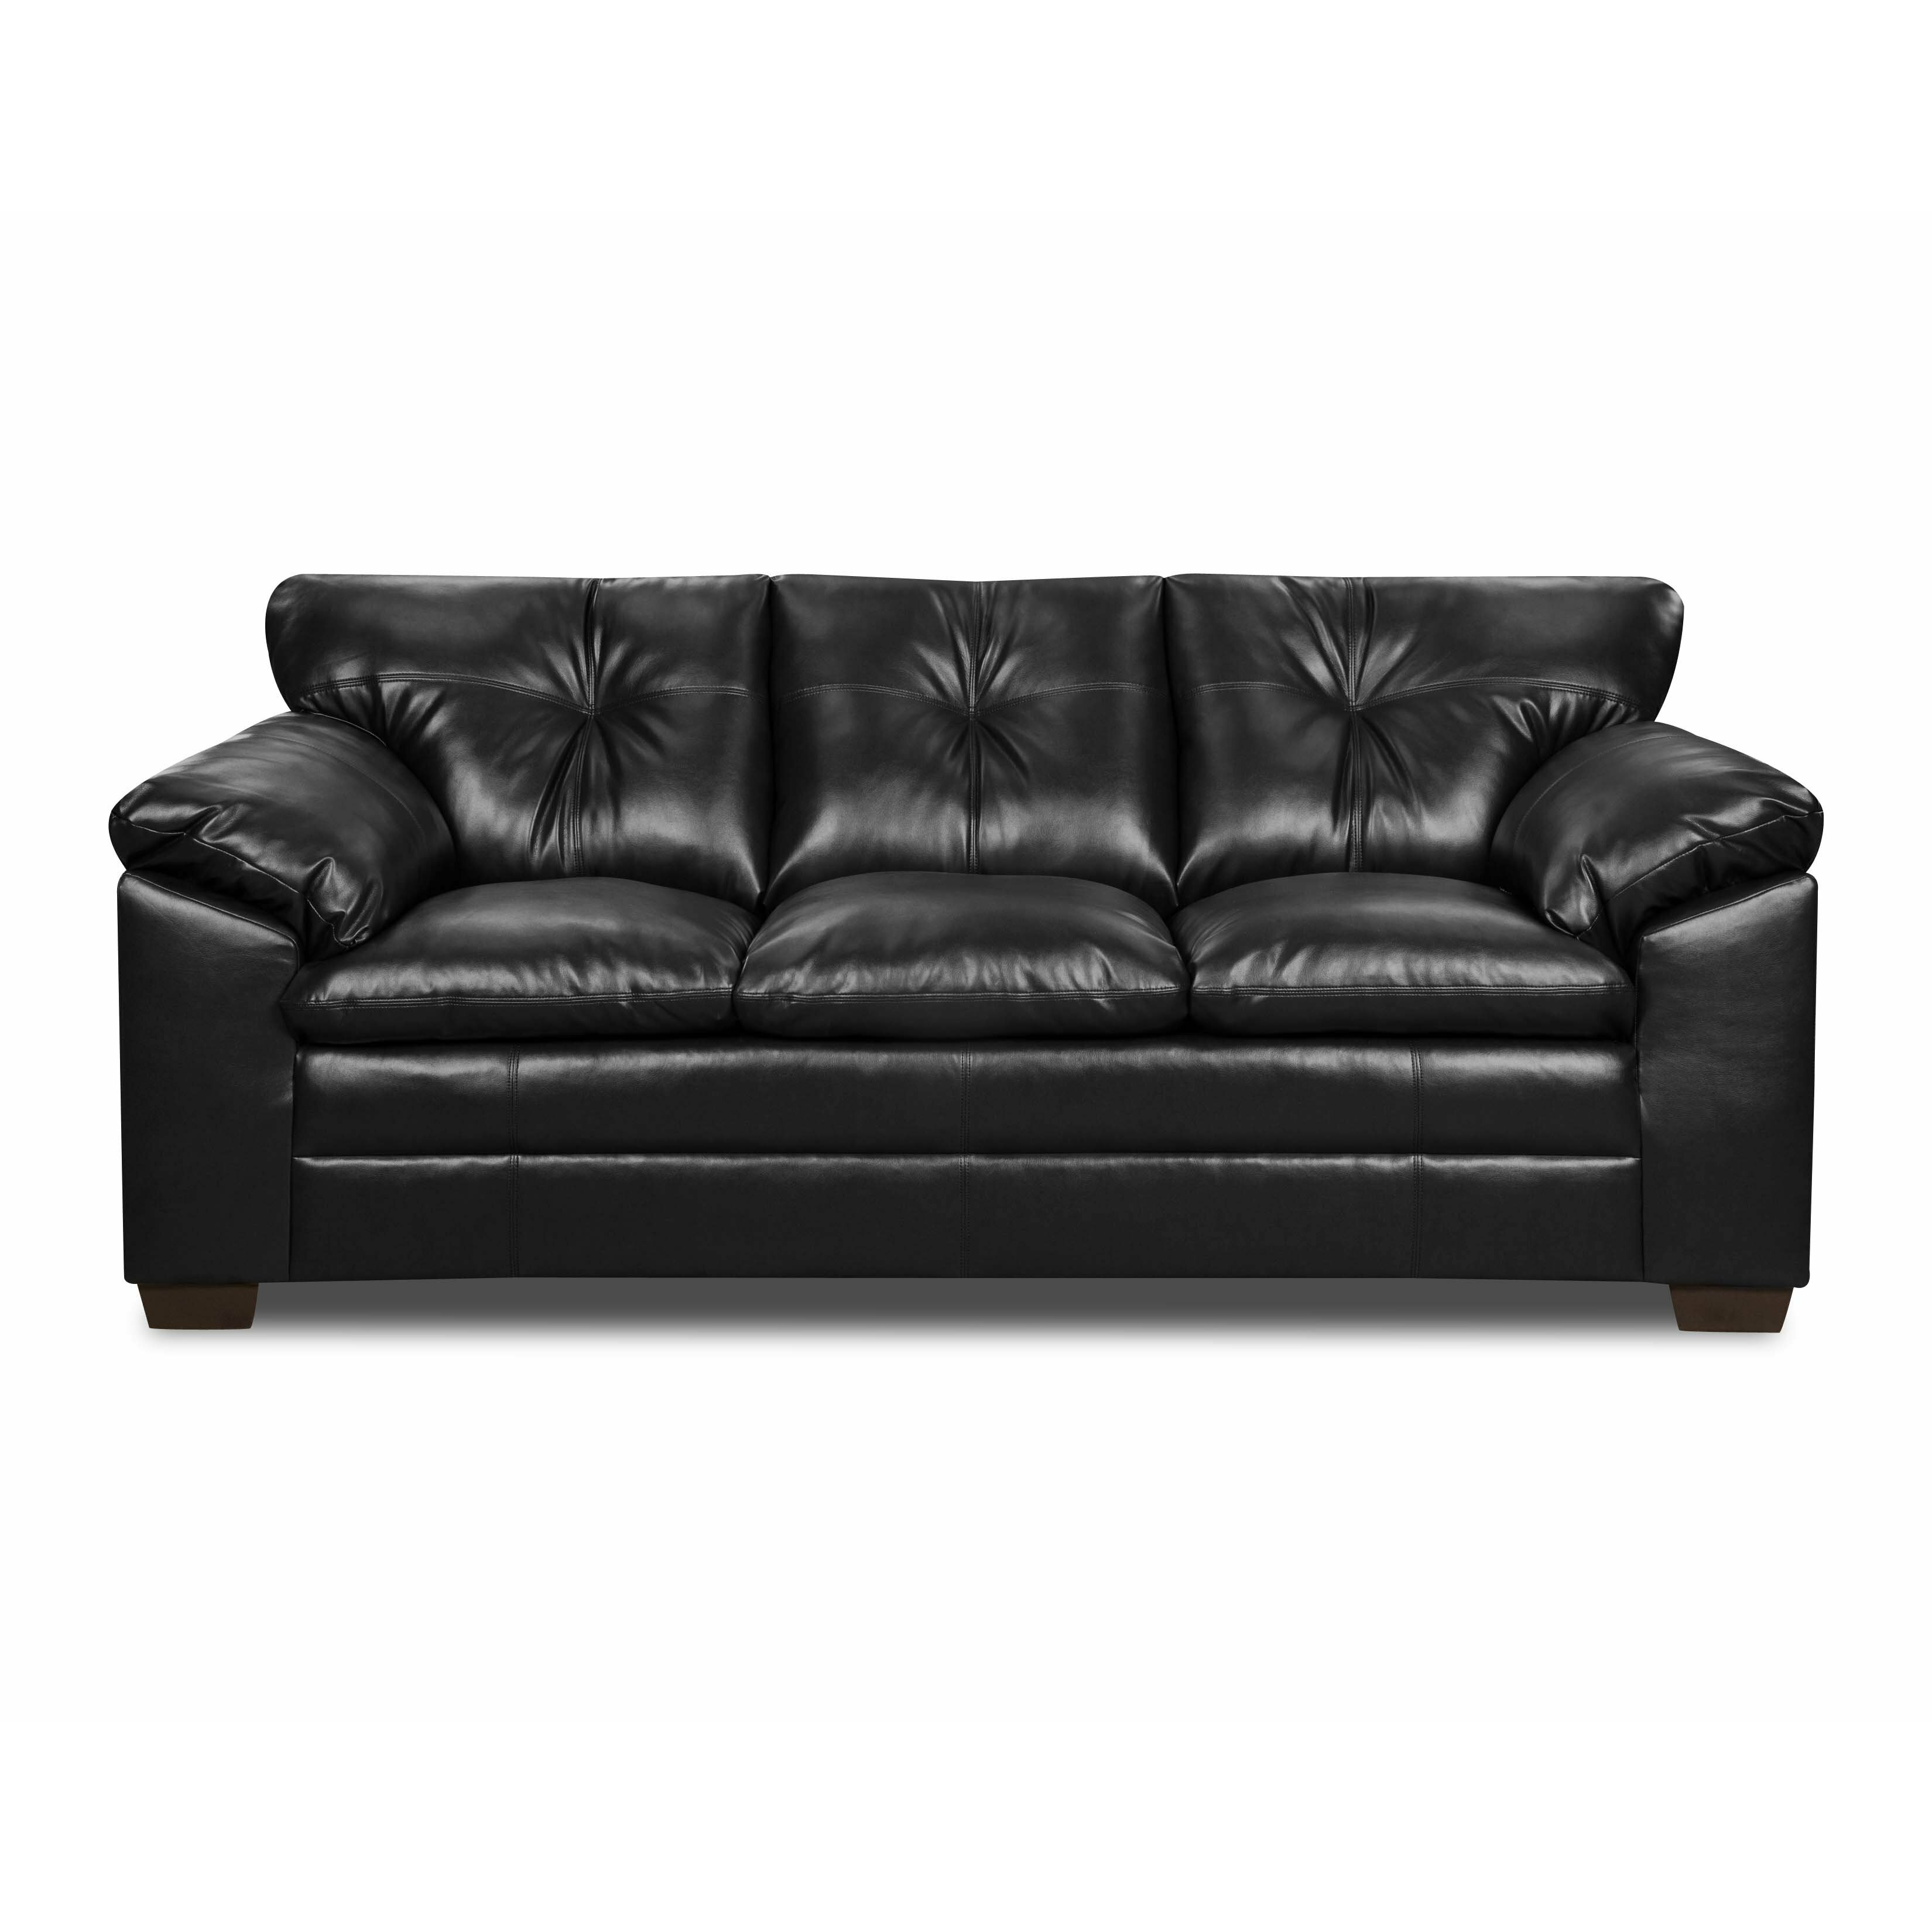 Living Room Furniture Leather And Upholstery Simmons Upholstery Sebring Sofa Reviews Wayfair